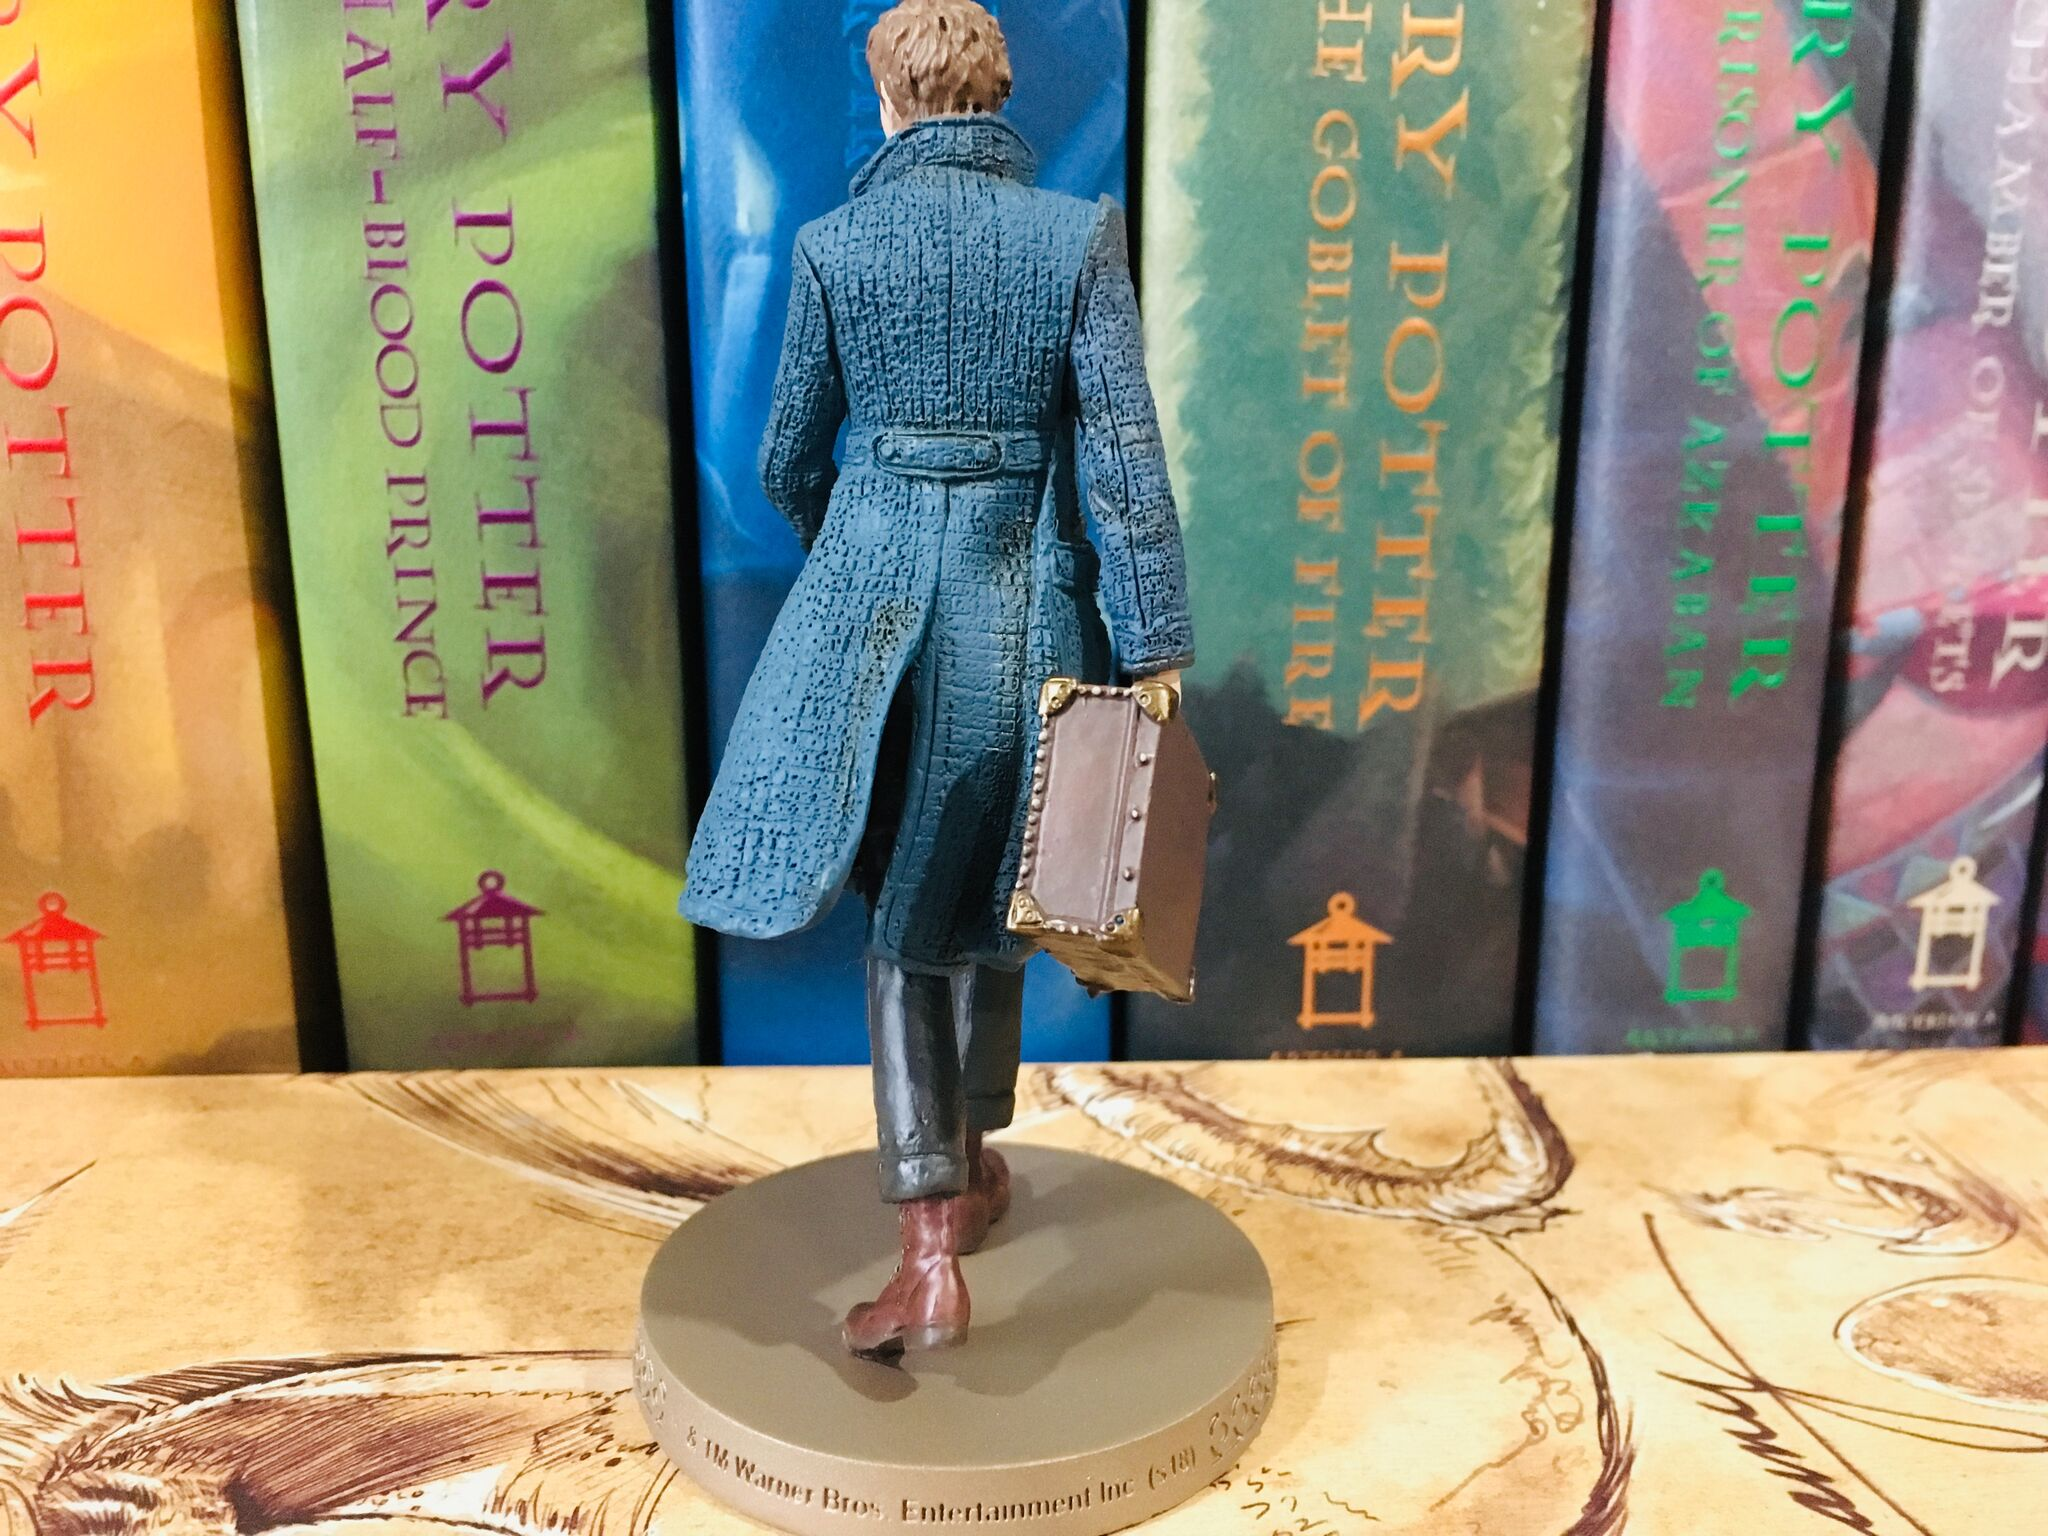 Even from the back, Newt's outfit is still lovingly characterized.